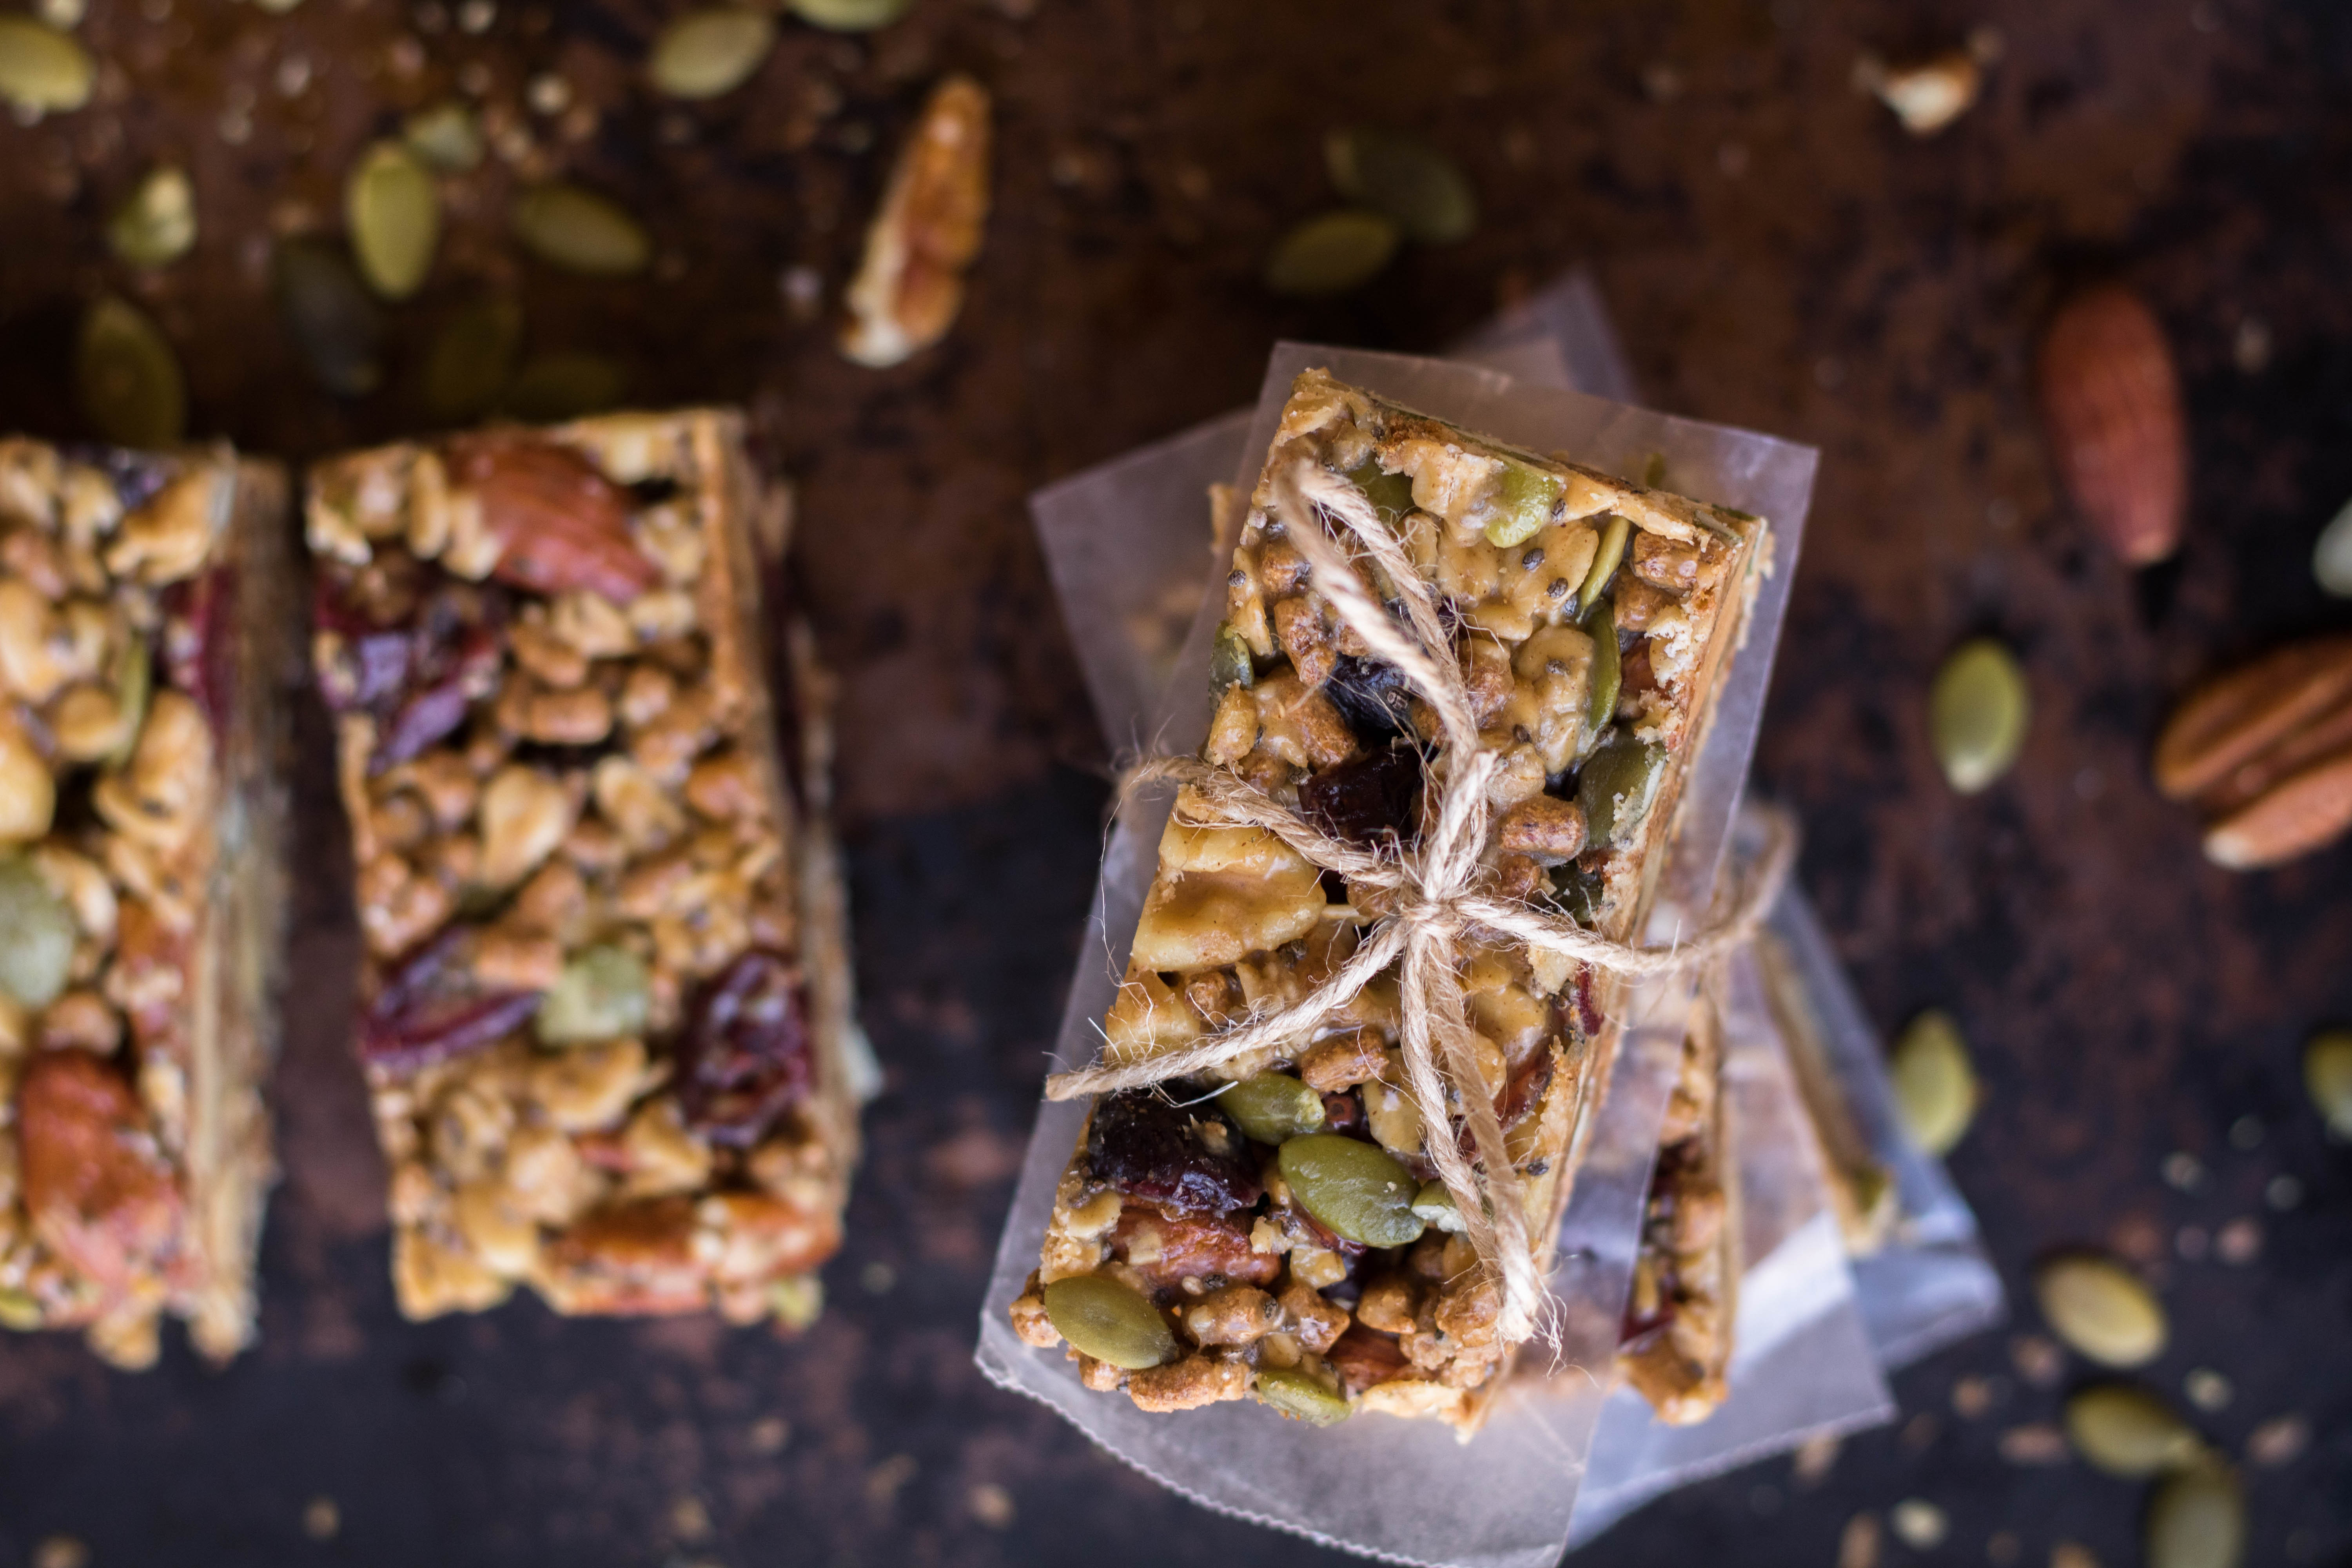 Ingredients to make Trail mix energy bars recipe